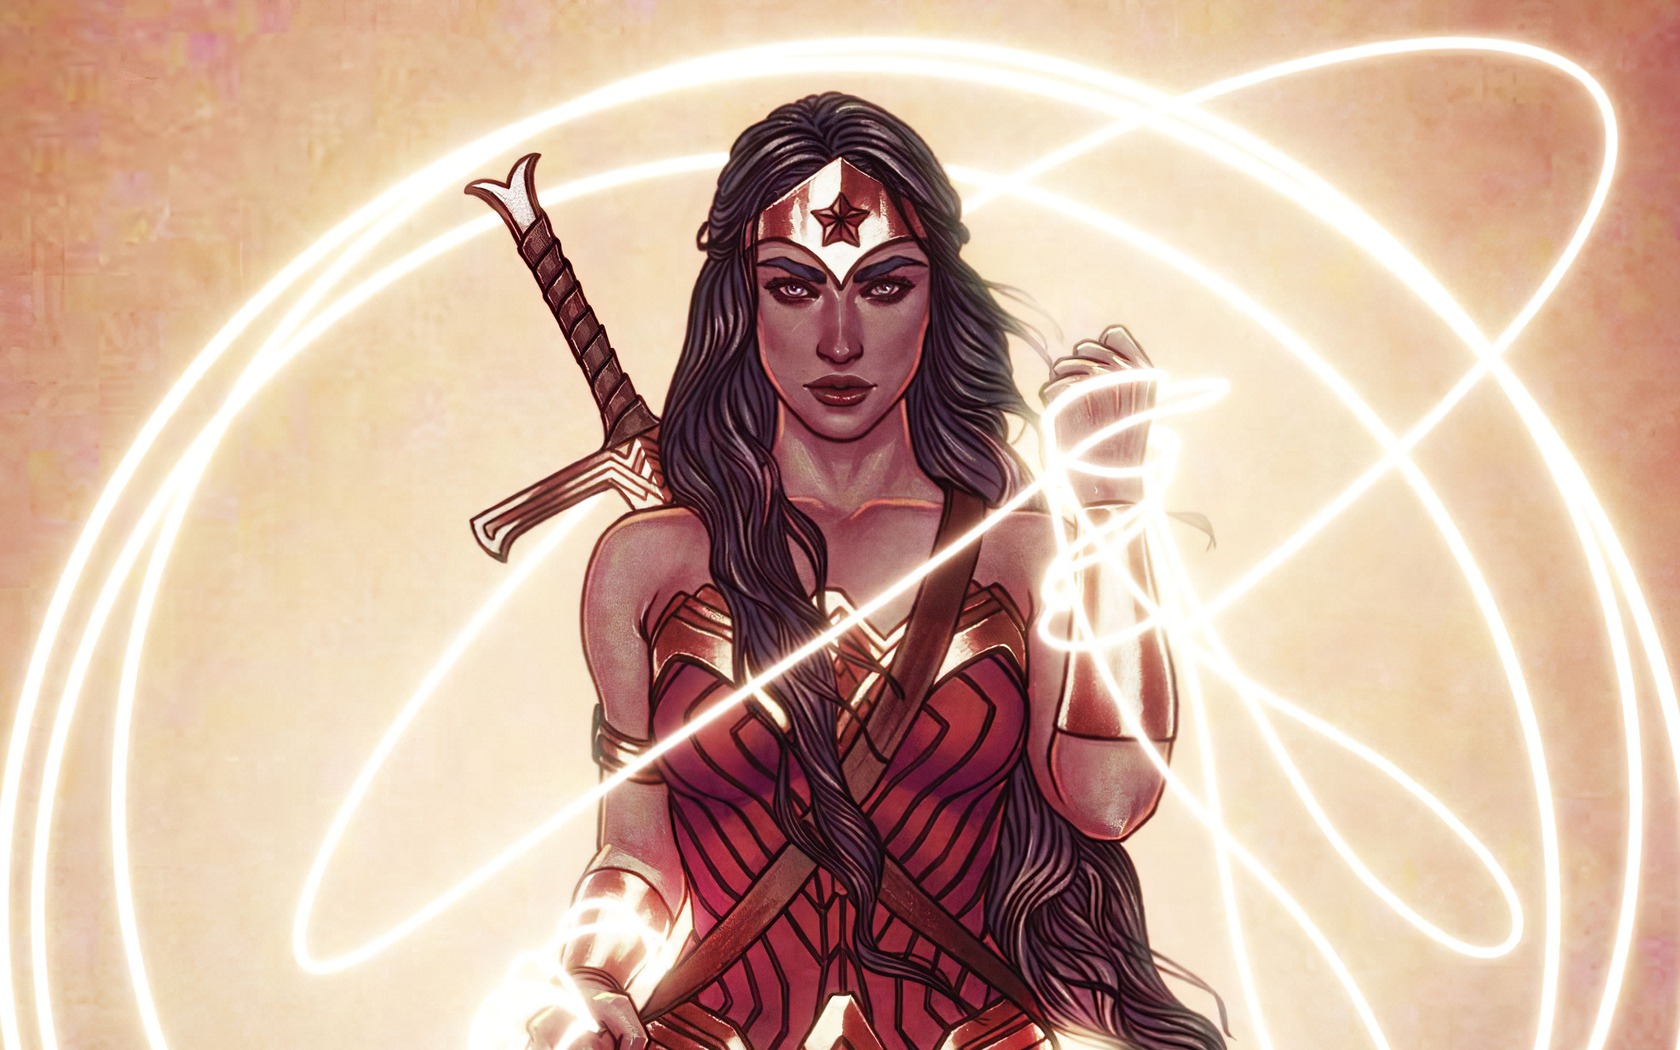 wonder-woman-4kartwork-2020-oa.jpg